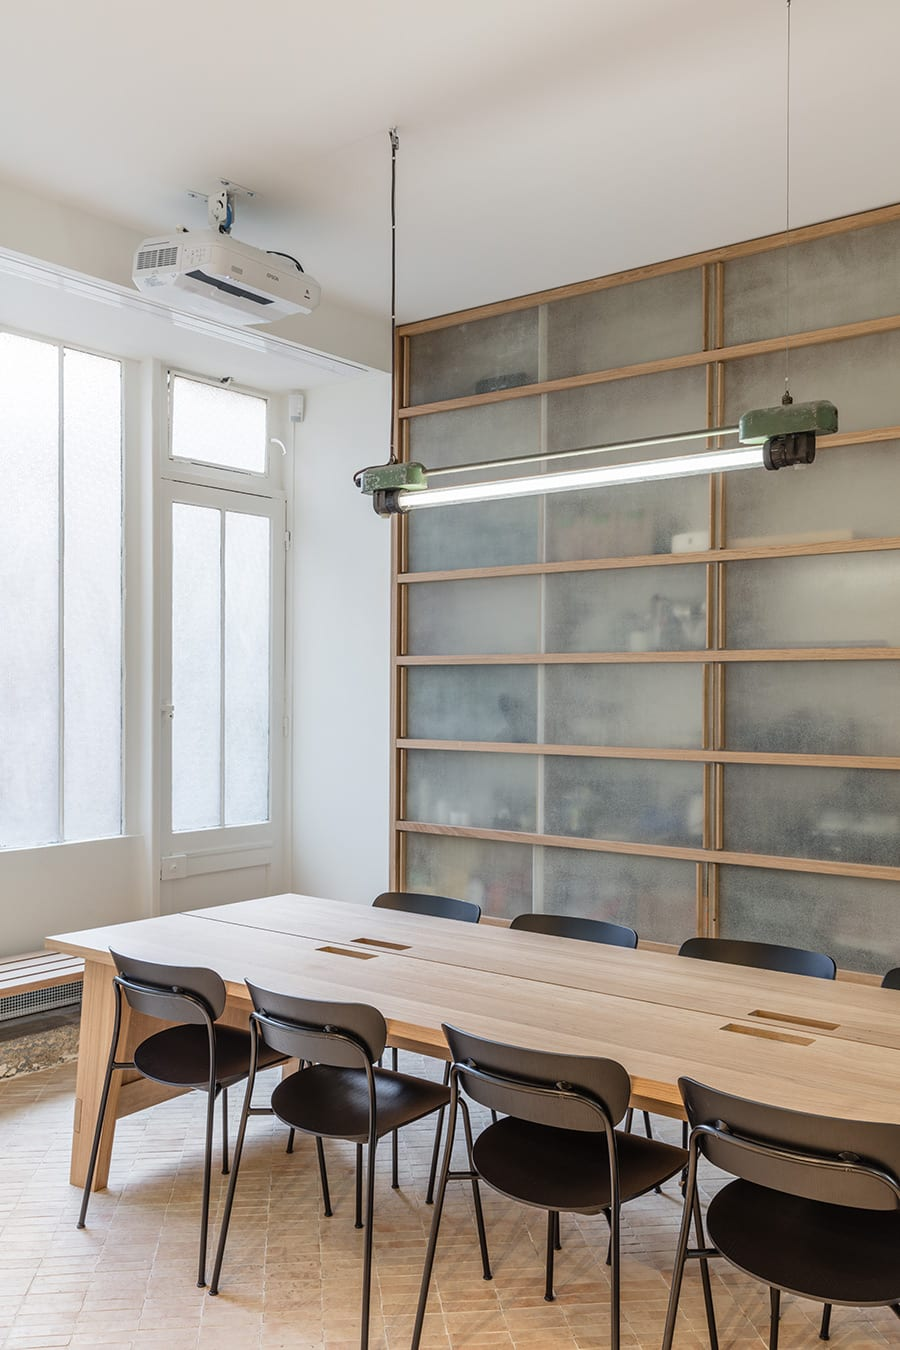 OBO Office in Paris, France by Ciguë | Yellowtrace